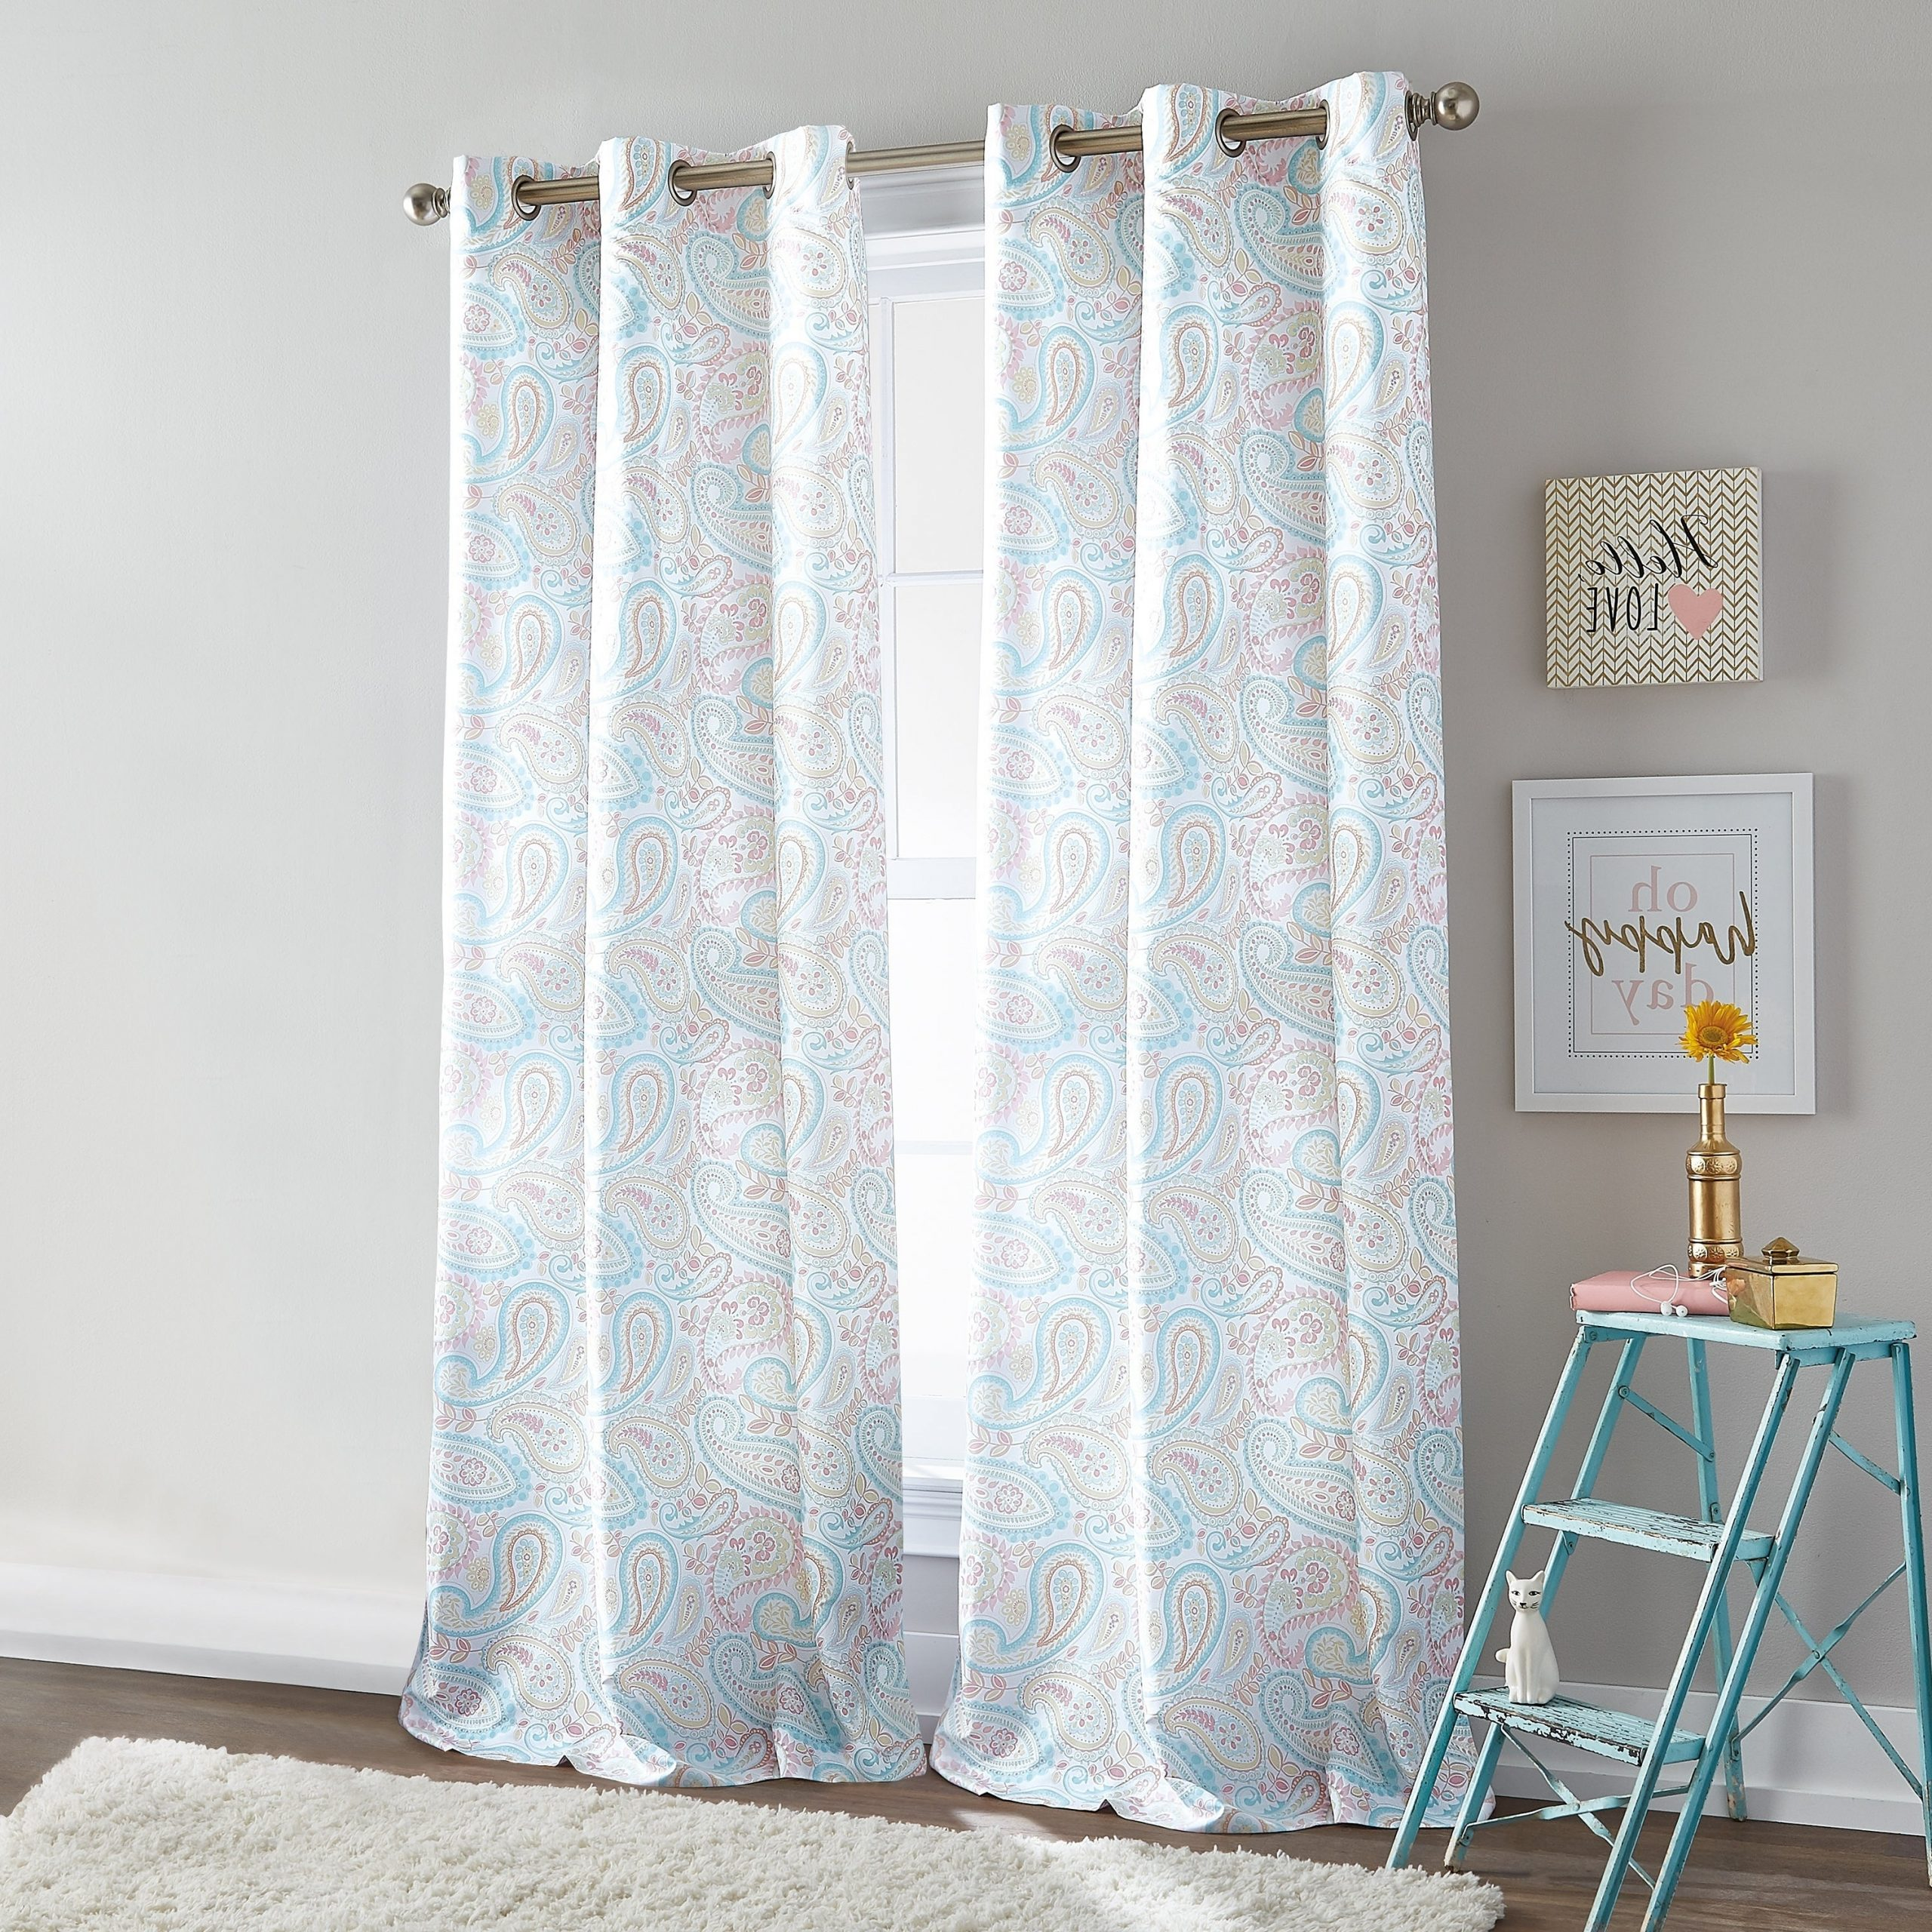 Details About Ryder Paisley Room Darkening Grommet Curtain Panel Pair Intended For Well Liked Kaiden Geometric Room Darkening Window Curtains (View 14 of 20)